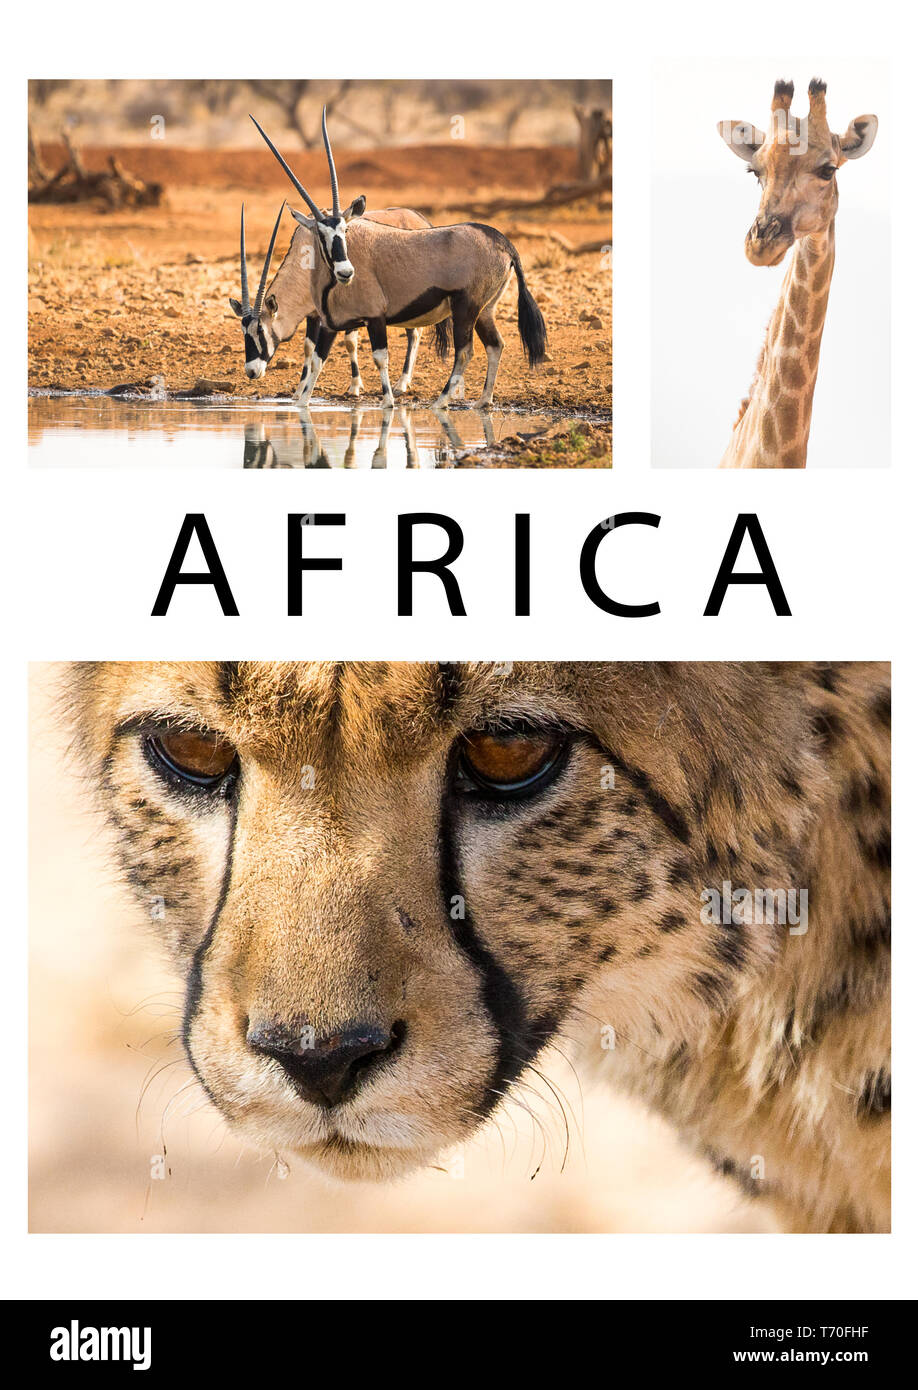 Africa or African collage of a collection or group of wildlife images or photos of Cheetah, Giraffe and Oryx animals in the wild of Namibia with text - Stock Image